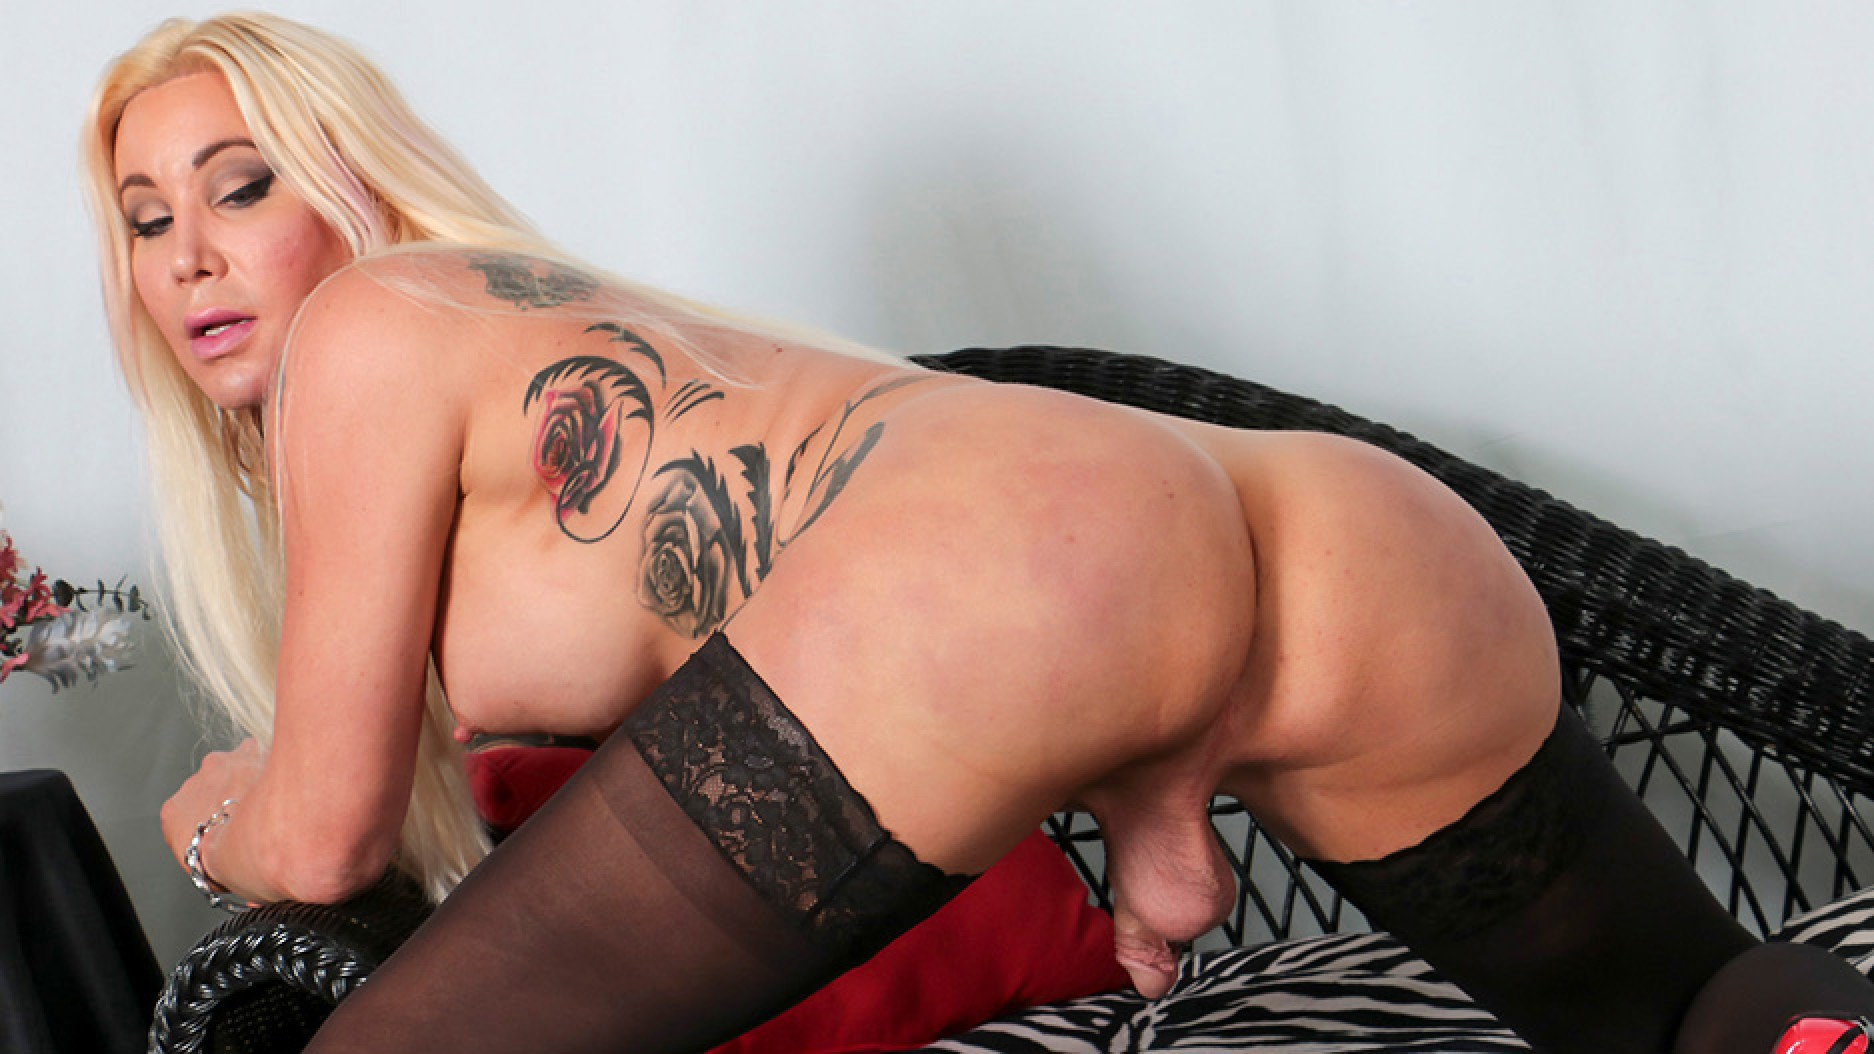 ShemalePorn Horny Blonde Josie Wails Shakes Her Booty! Added  28th Jan 2017 Shemale XXX Siterip